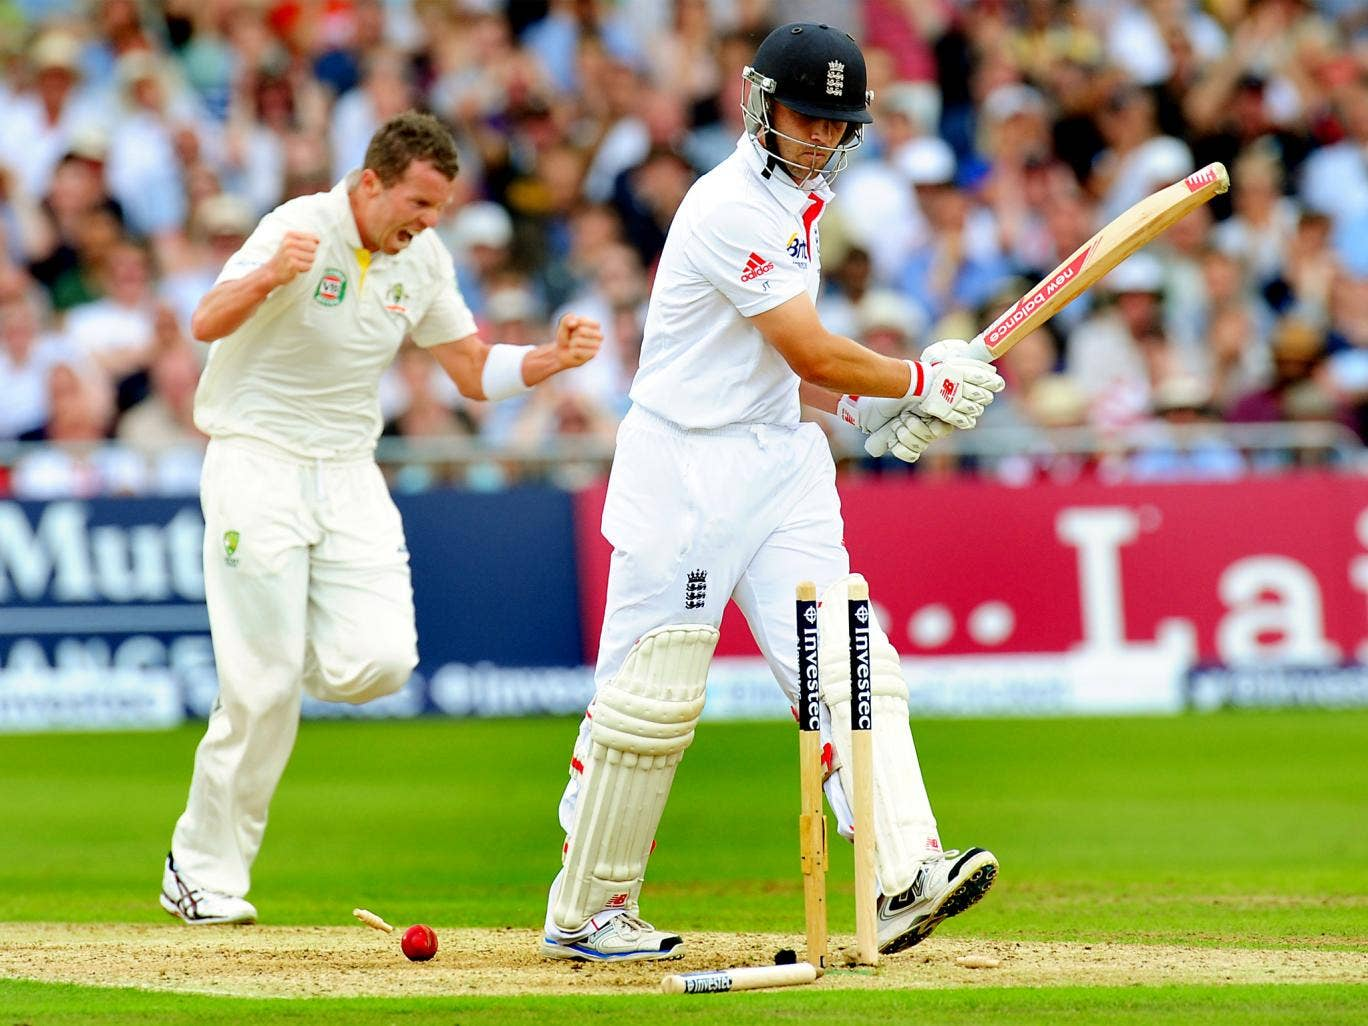 Peter Siddle celebrates dismissing Jonathan Trott